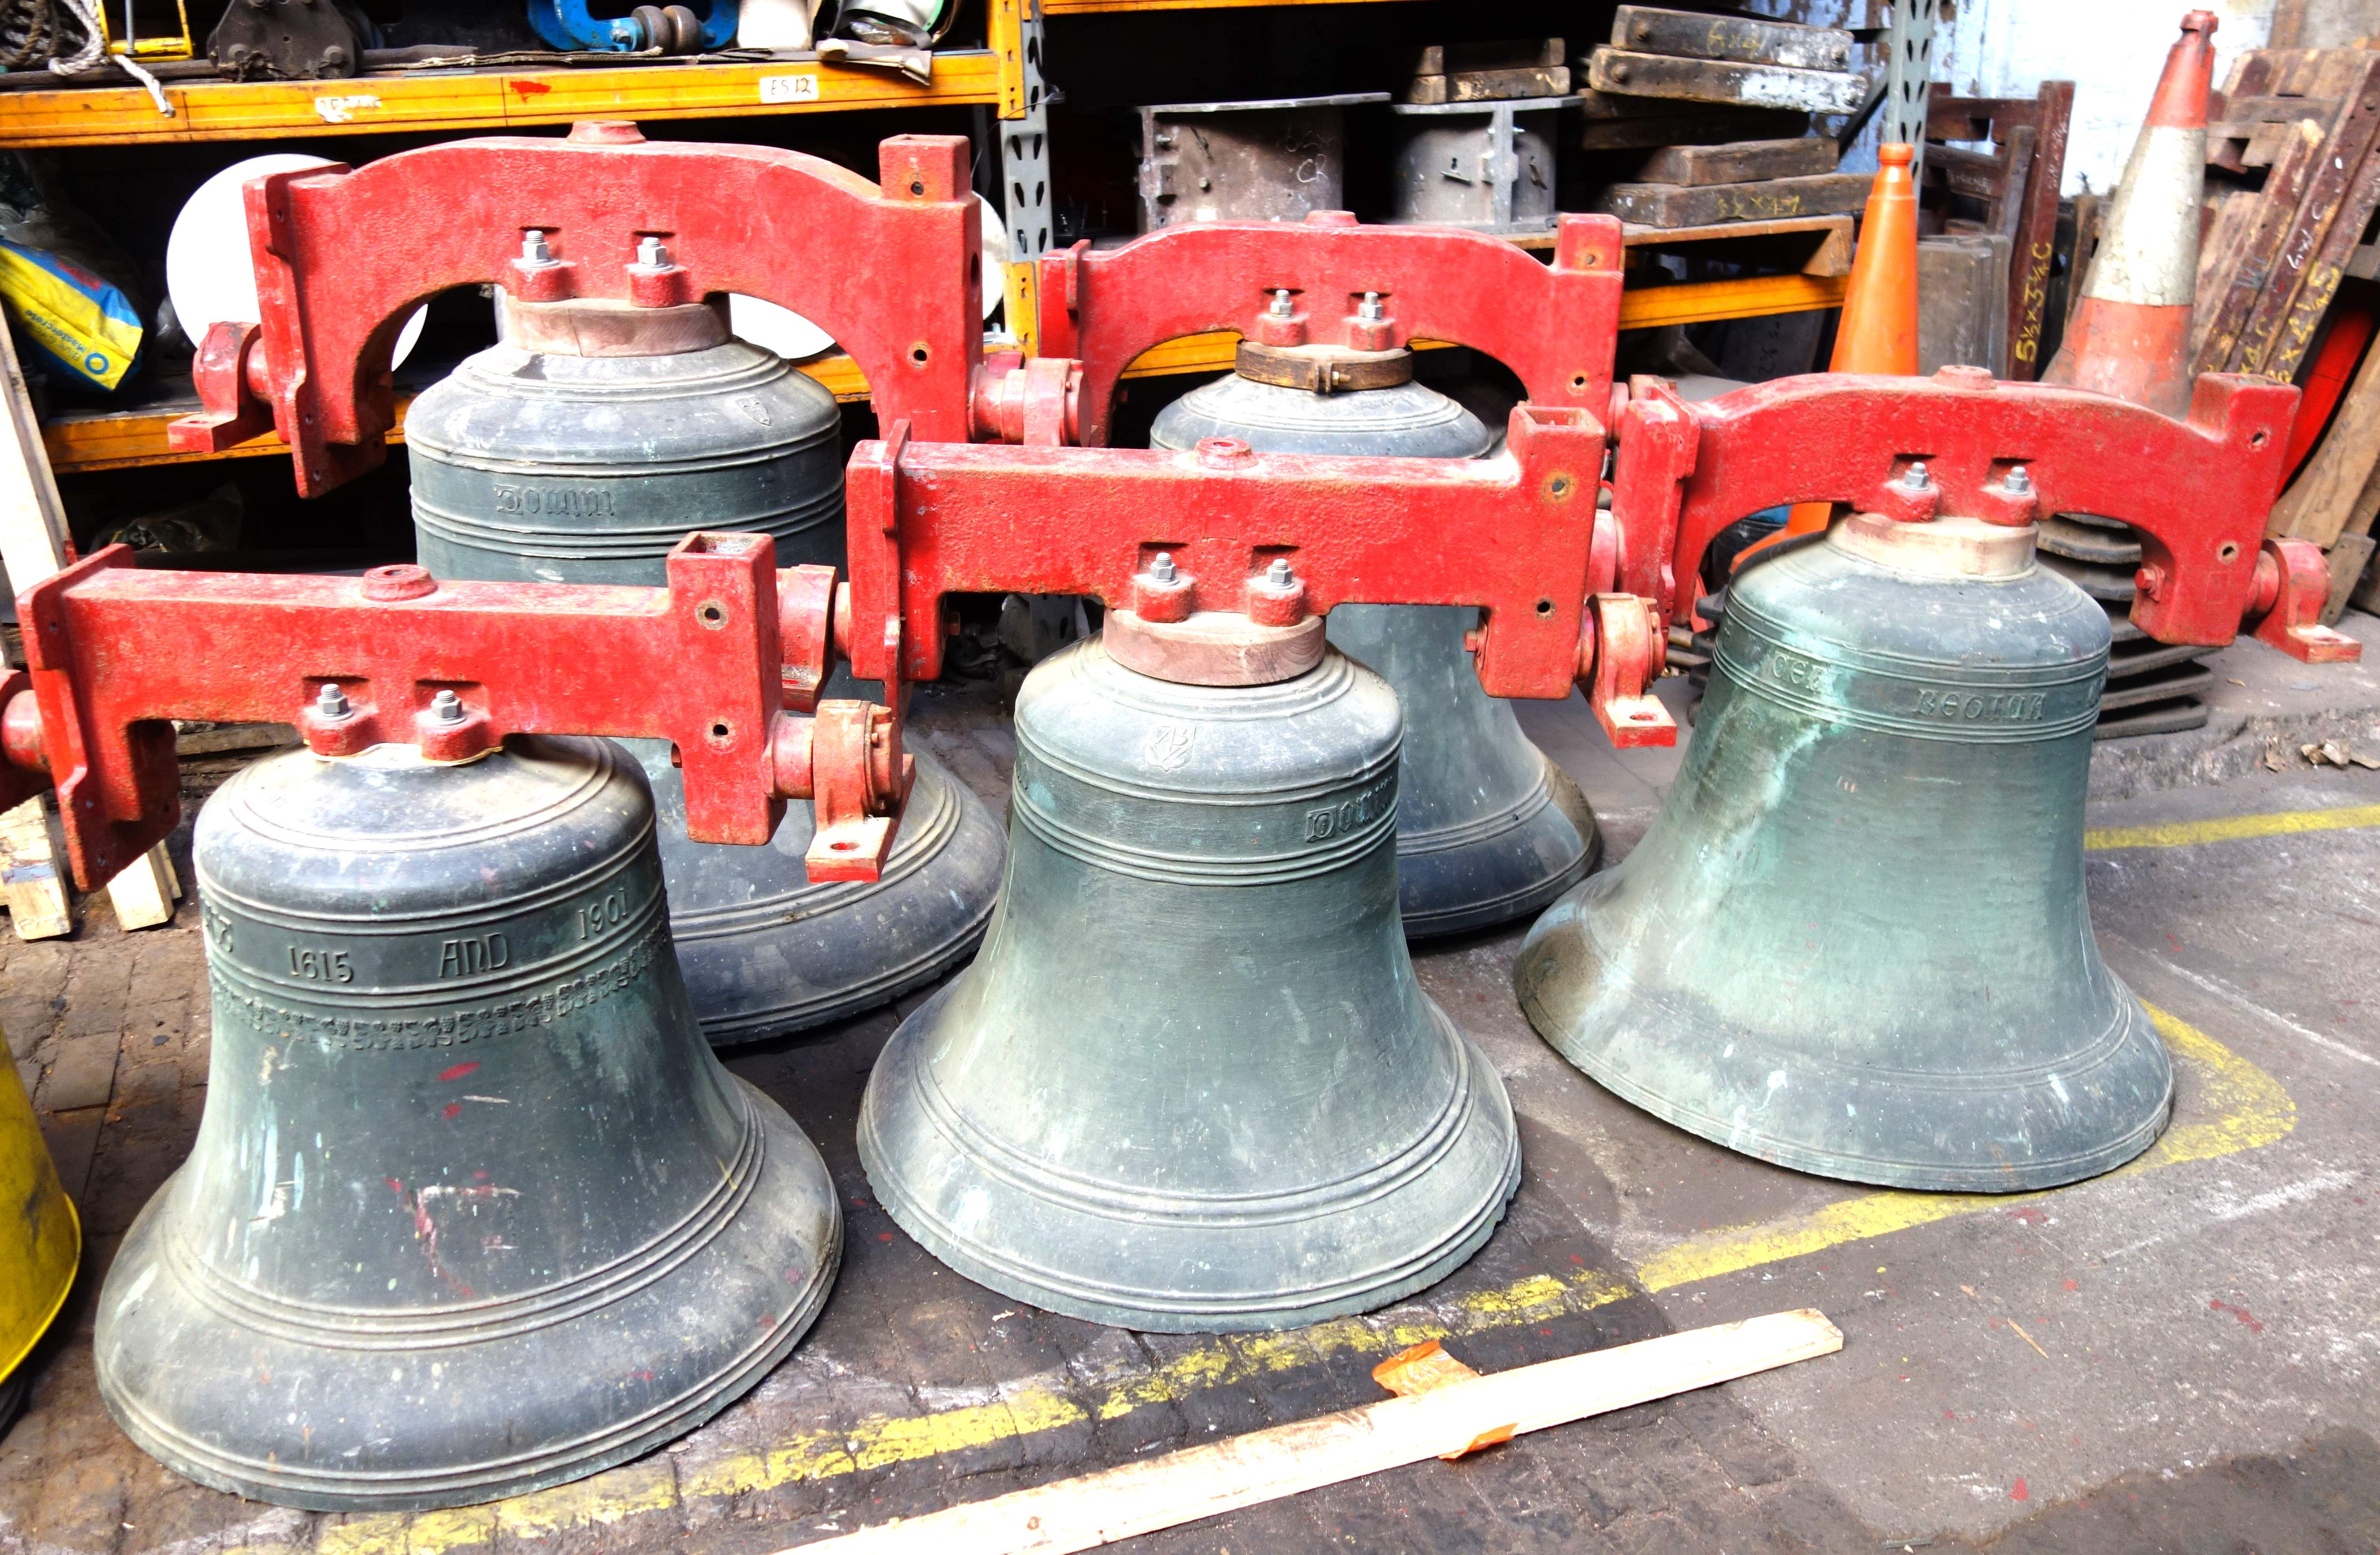 Shotesham bells on arrival at the Foundry.